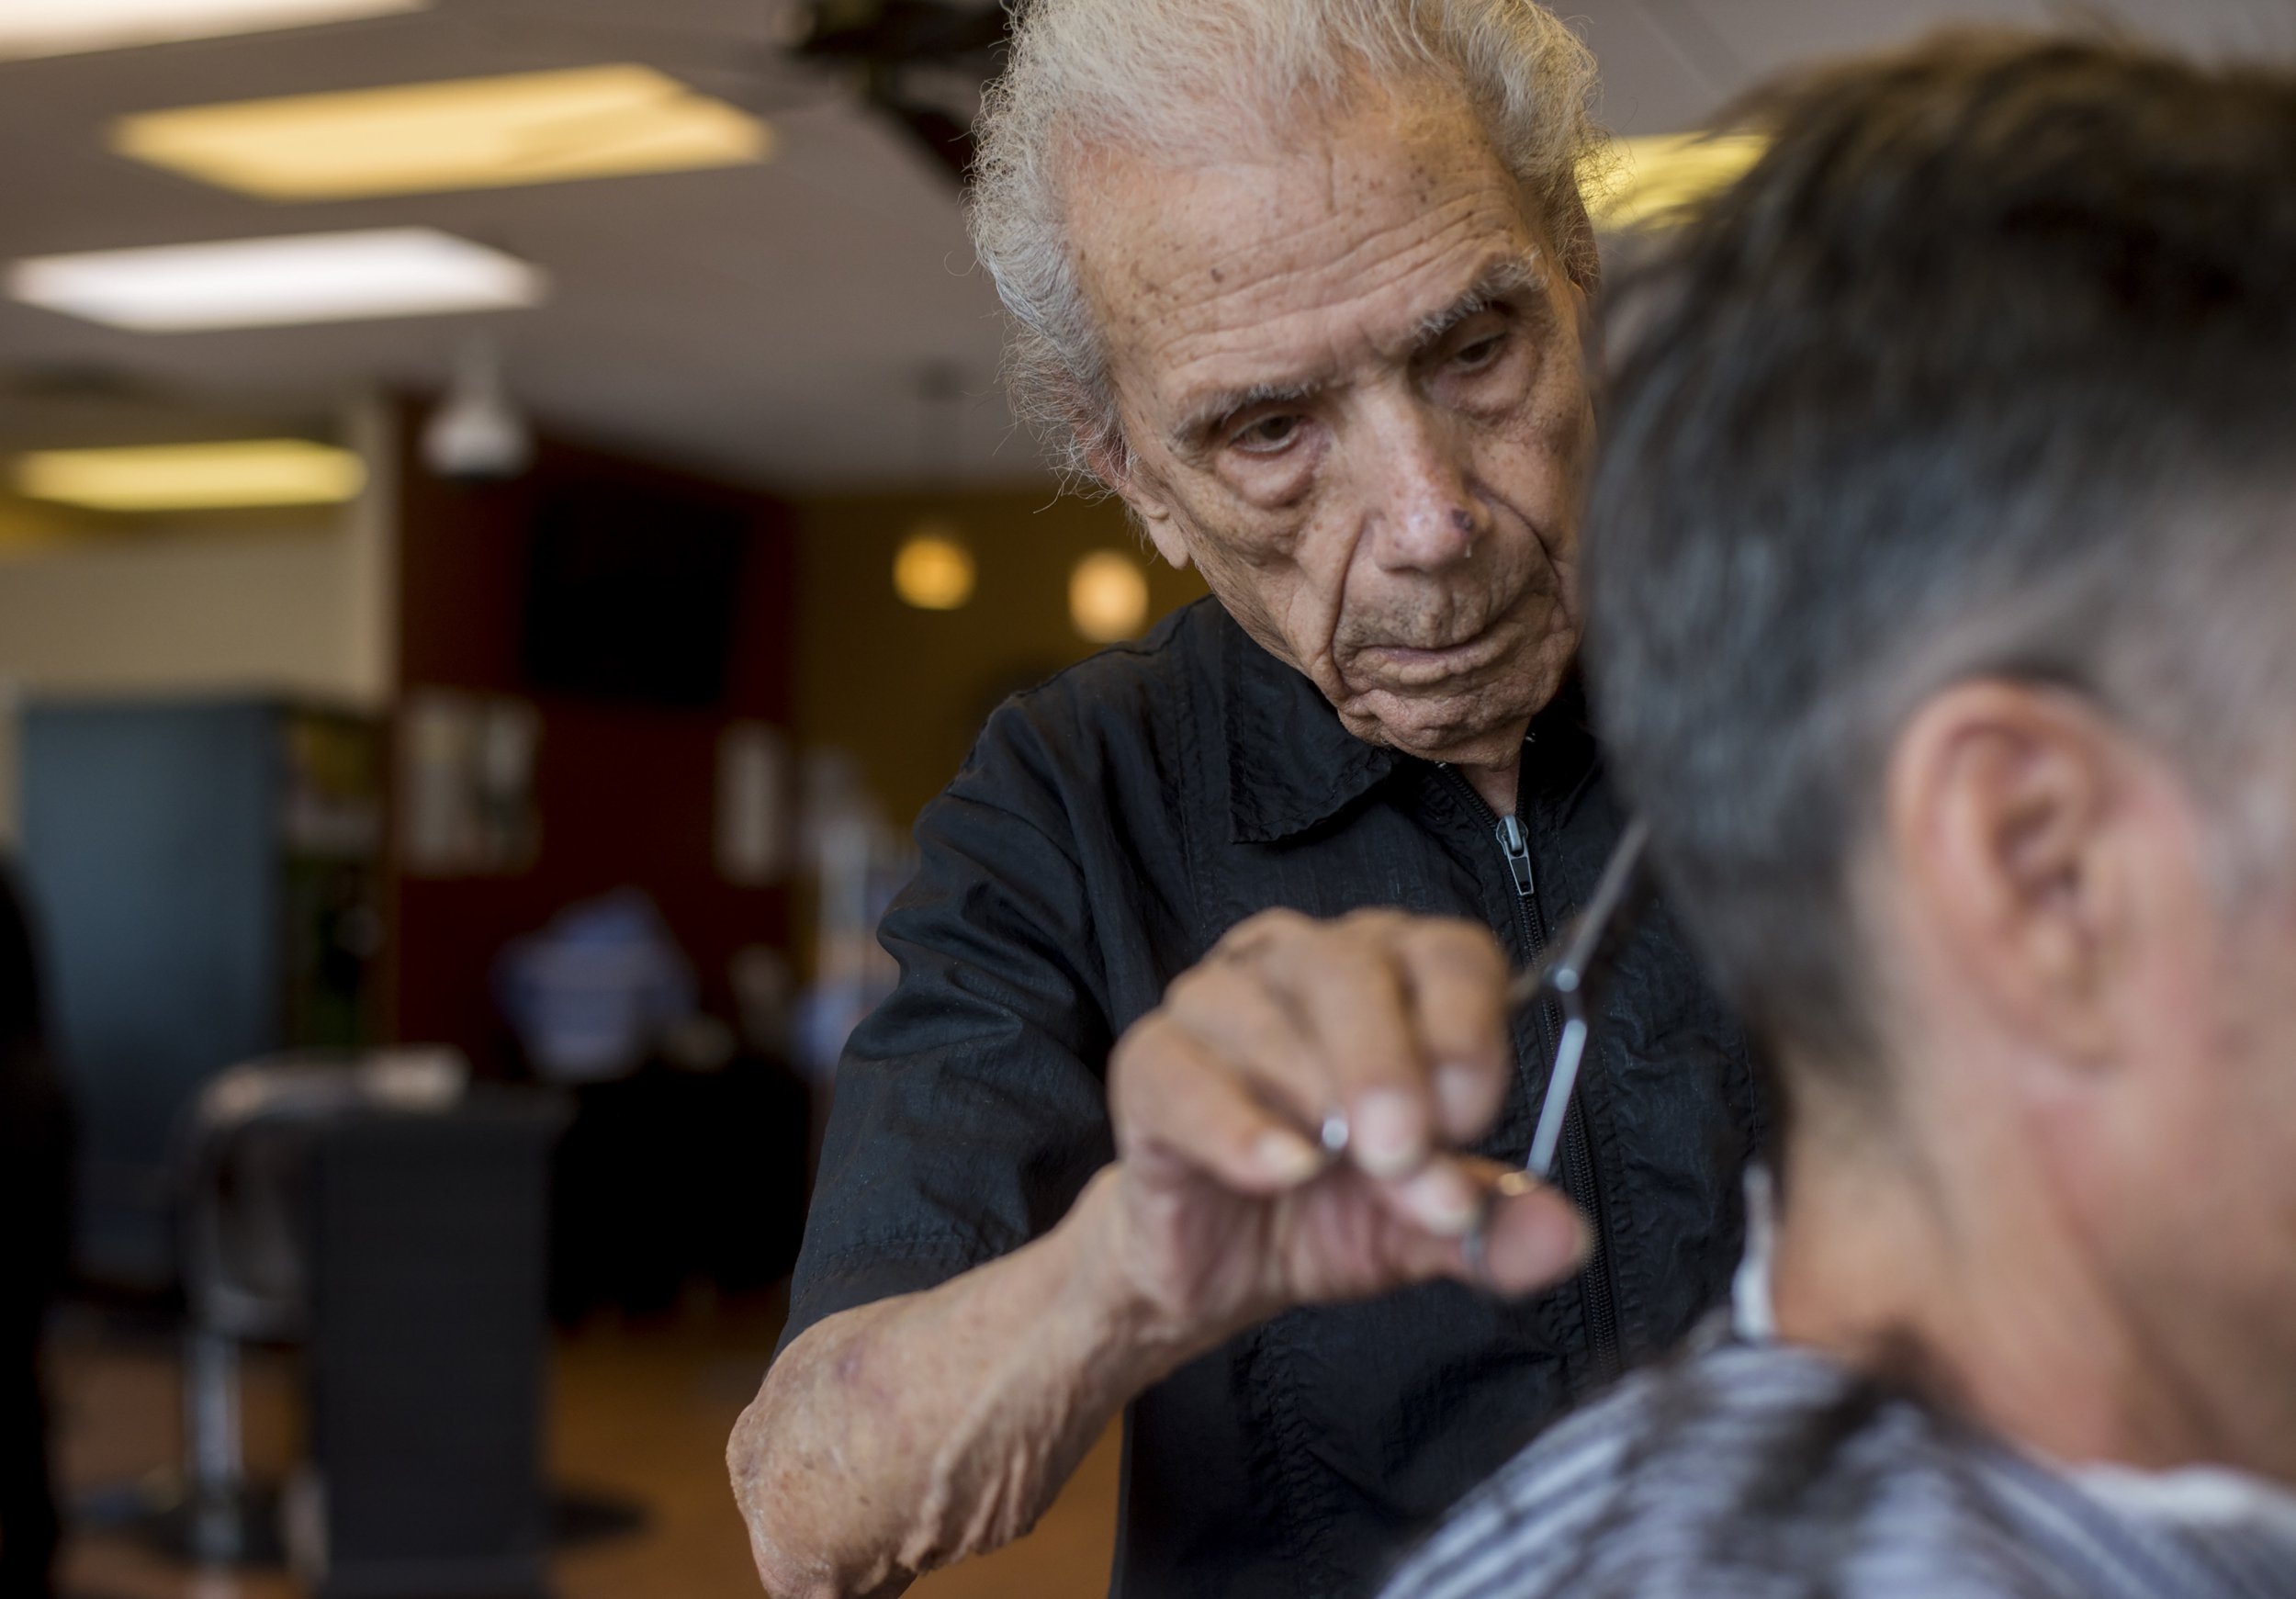 Anthony Mancinelli trims the hair of a customer at Fantastic Cuts, a hair salon in New Windsor, in upstate New York, Sept. 27, 2018. Mancinelli, 107, who began cutting hair when Warren Harding was president, has been recognised by Guinness World Records as the oldest working barber. (Andrew Seng/The New York Times) / Redux / eyevine Please agree fees before use. SPECIAL RATES MAY APPLY. For further information please contact eyevine tel: +44 (0) 20 8709 8709 e-mail: info@eyevine.com www.eyevine.com